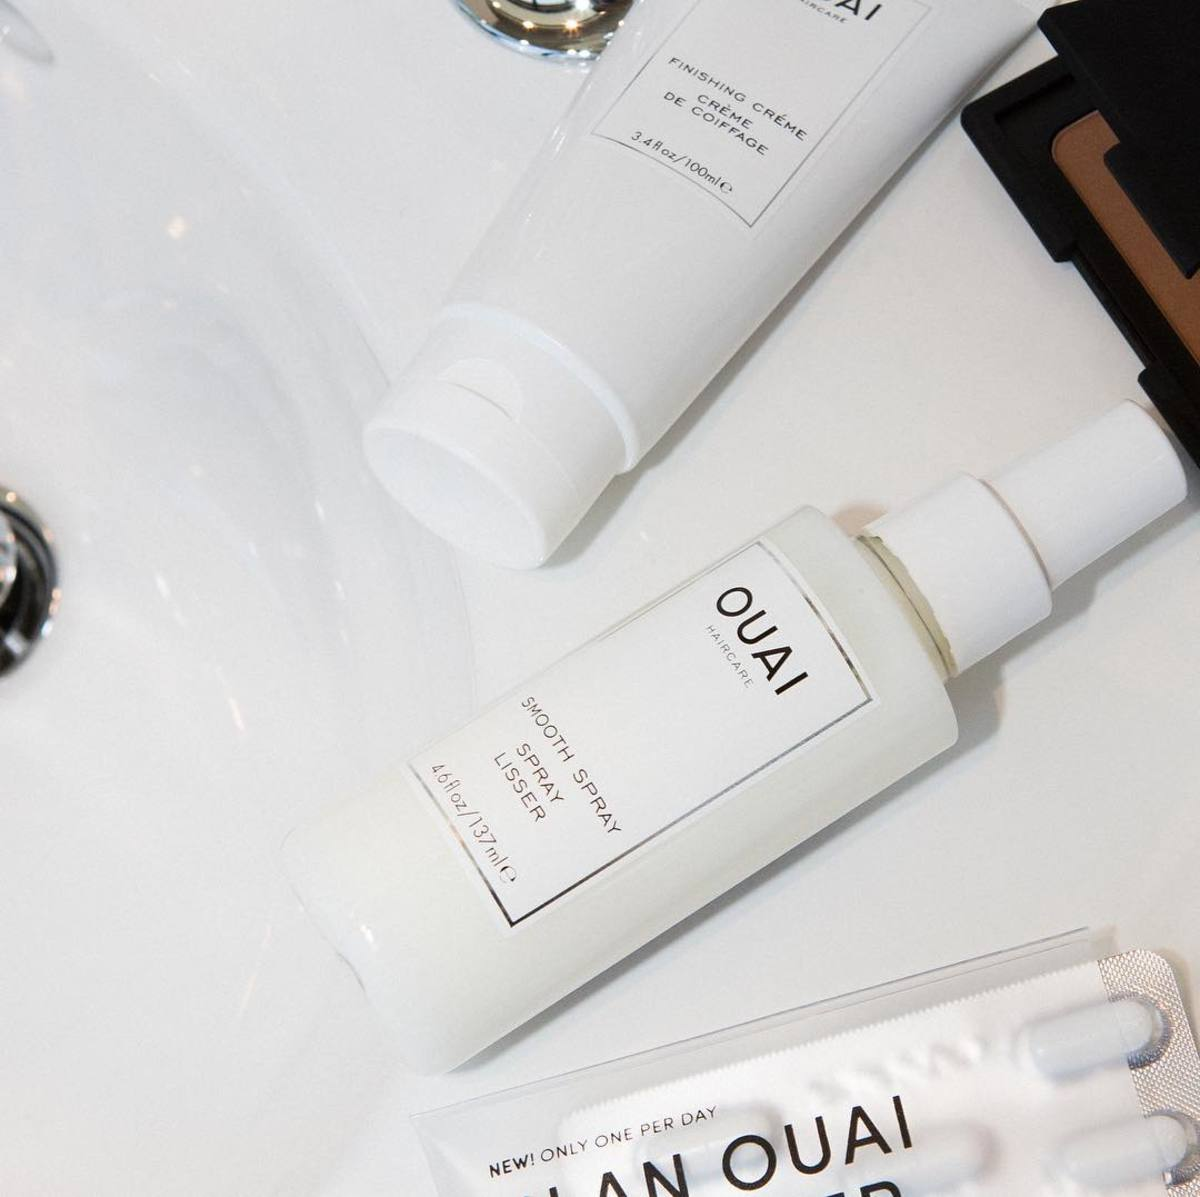 Photo: @theouai/Instagram